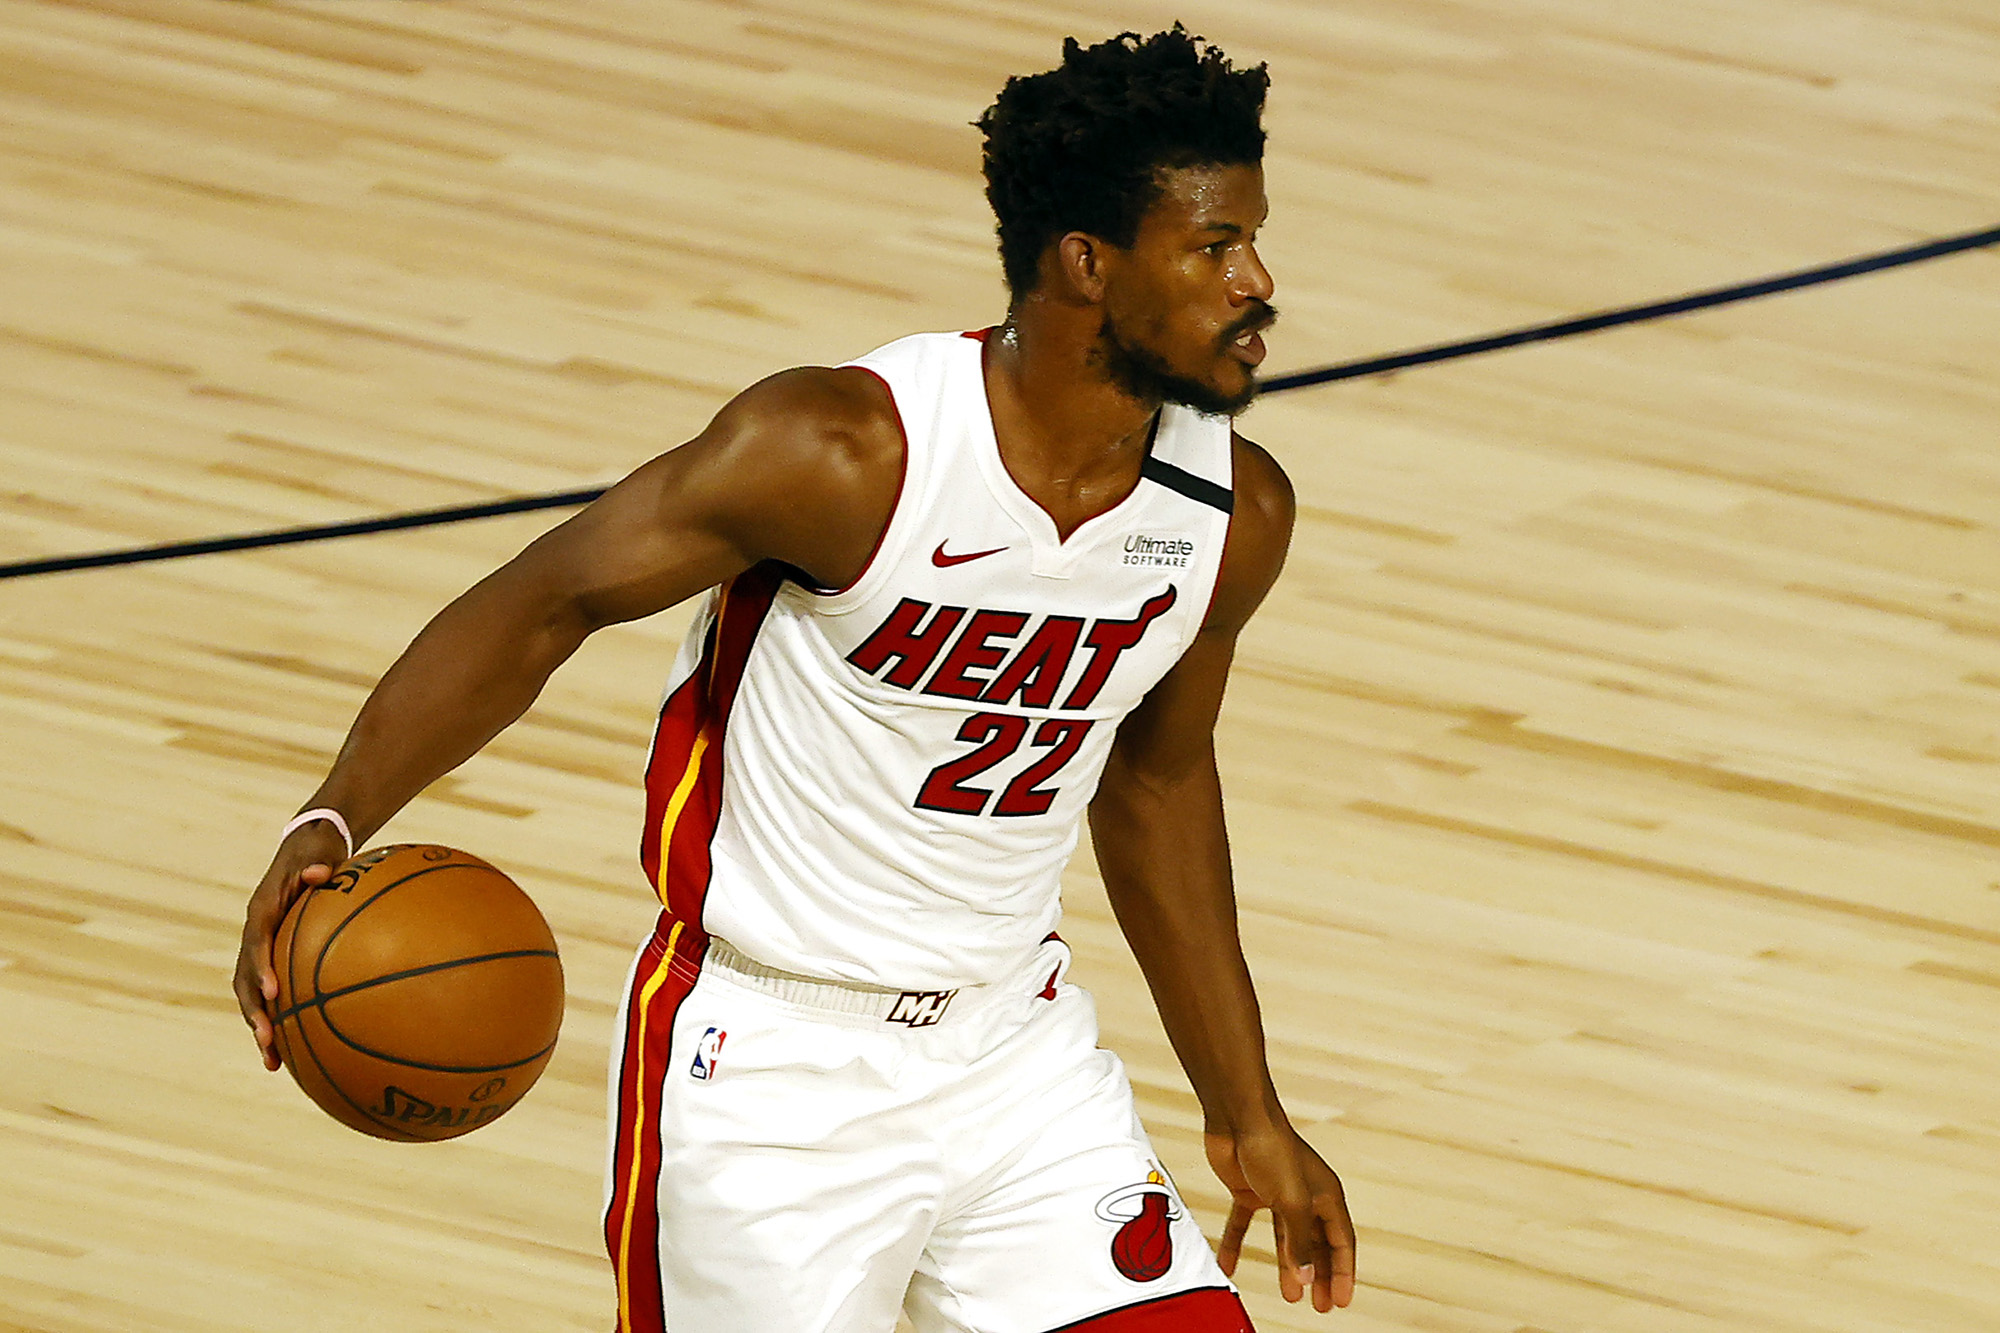 Why Nba Forced Jimmy Butler To Change His Nameless Heat Jersey